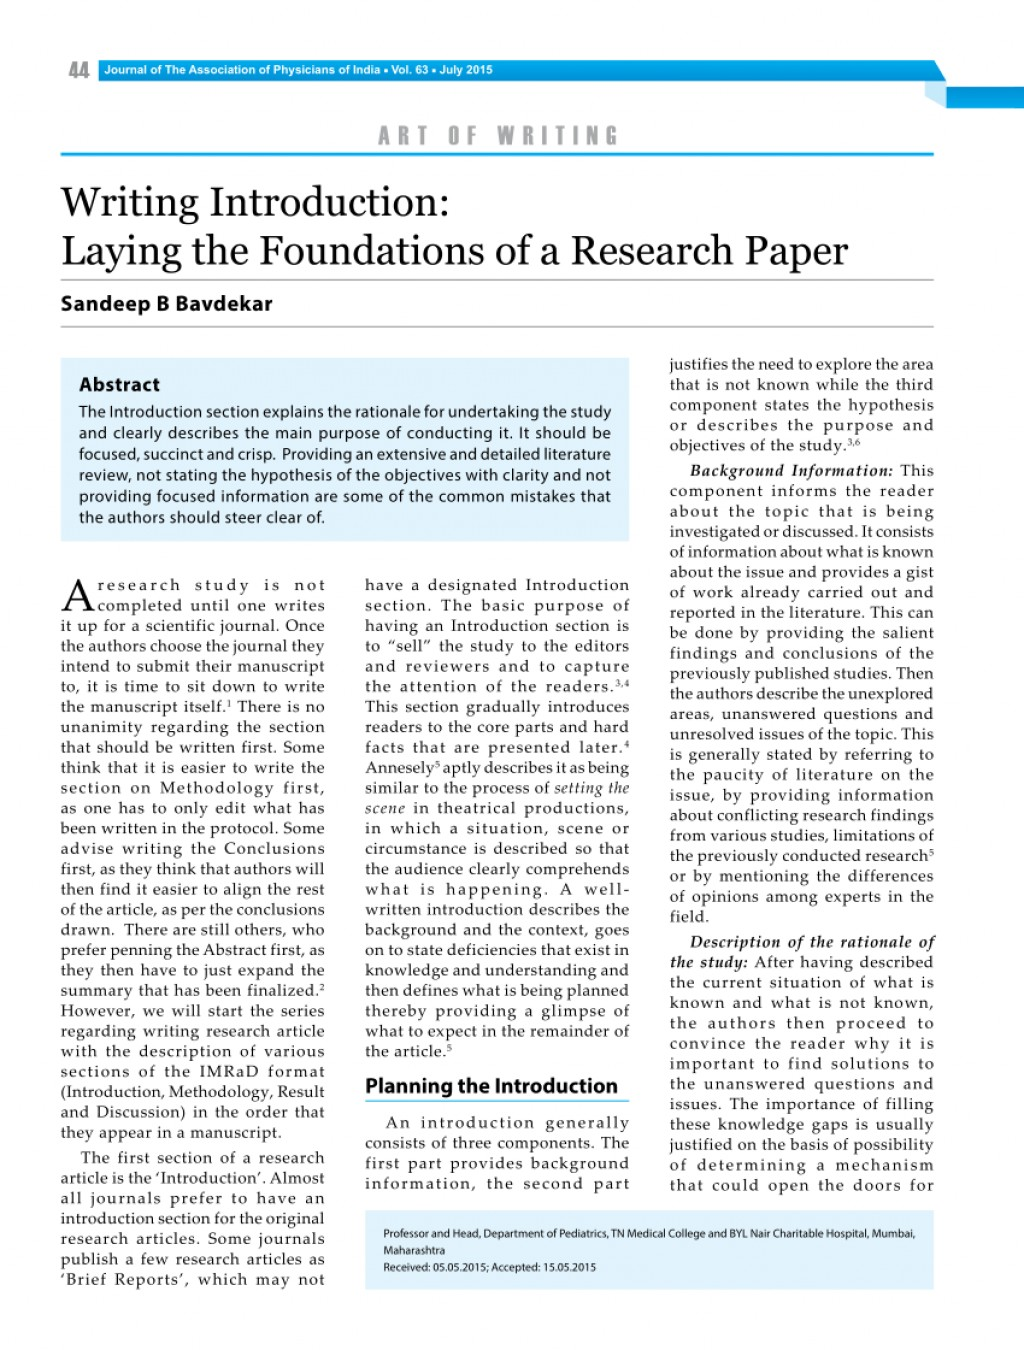 009 Largepreview Research Paper Example Surprising Introduction Of About Drugs Writing In Ppt Scientific Large